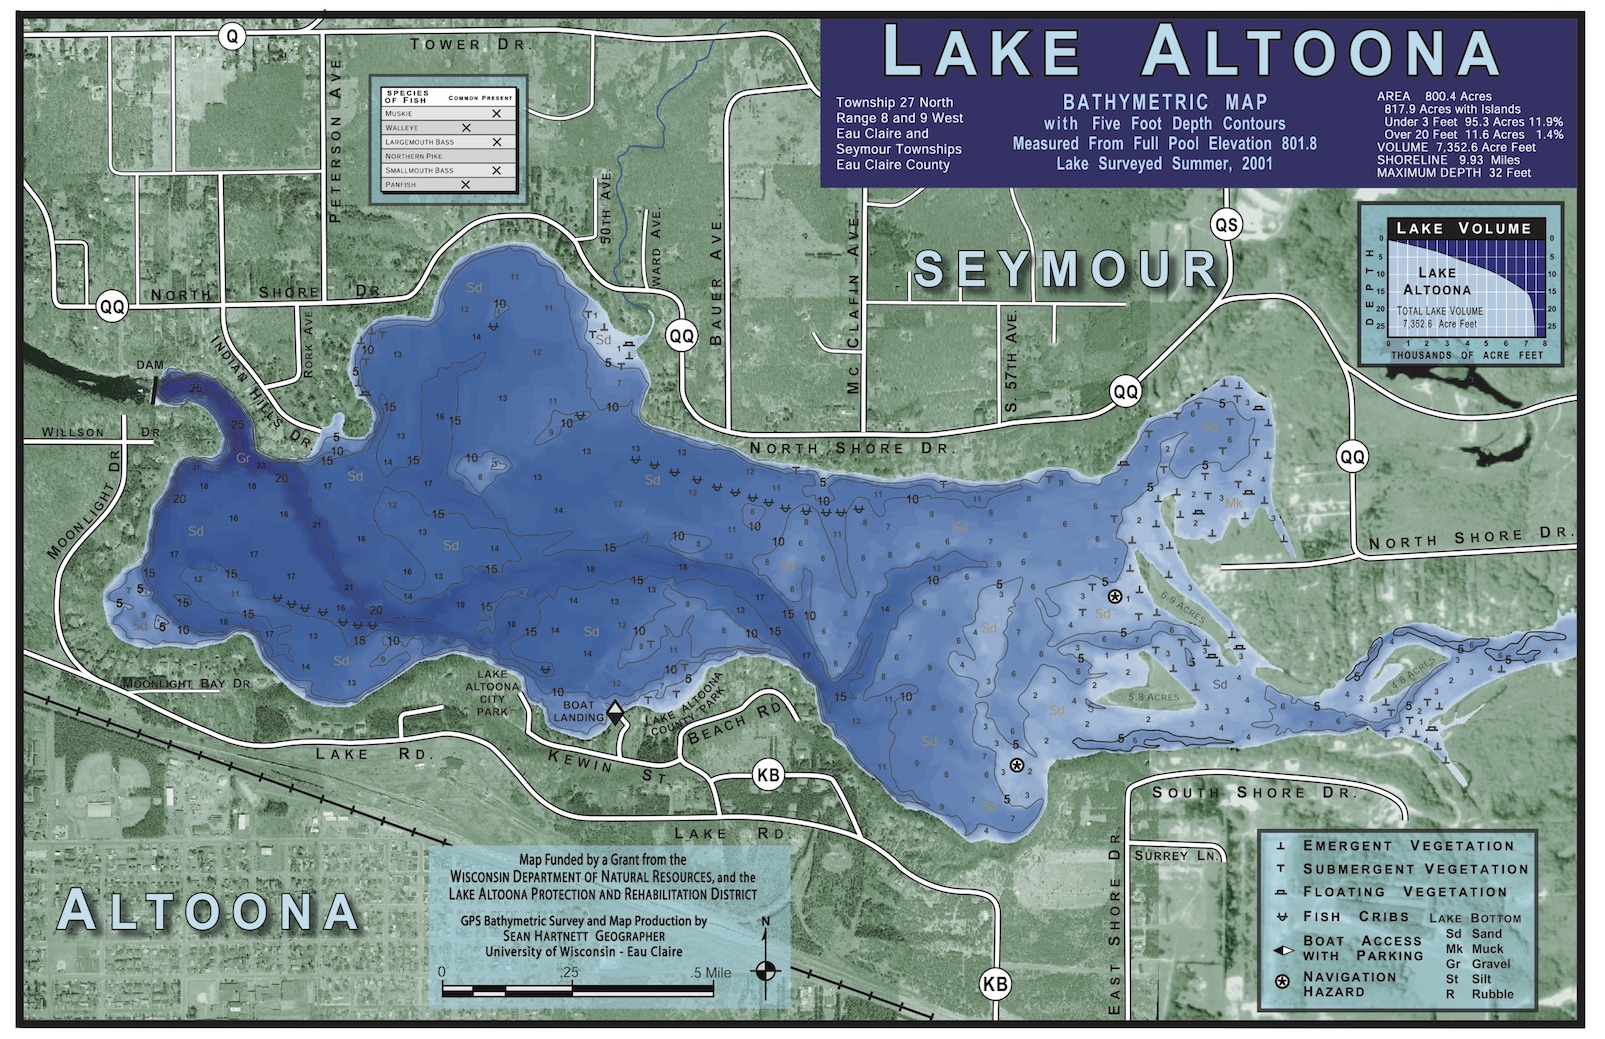 lake eau claire map Lake Maps Lake Altoona District Eau Claire County Wi lake eau claire map